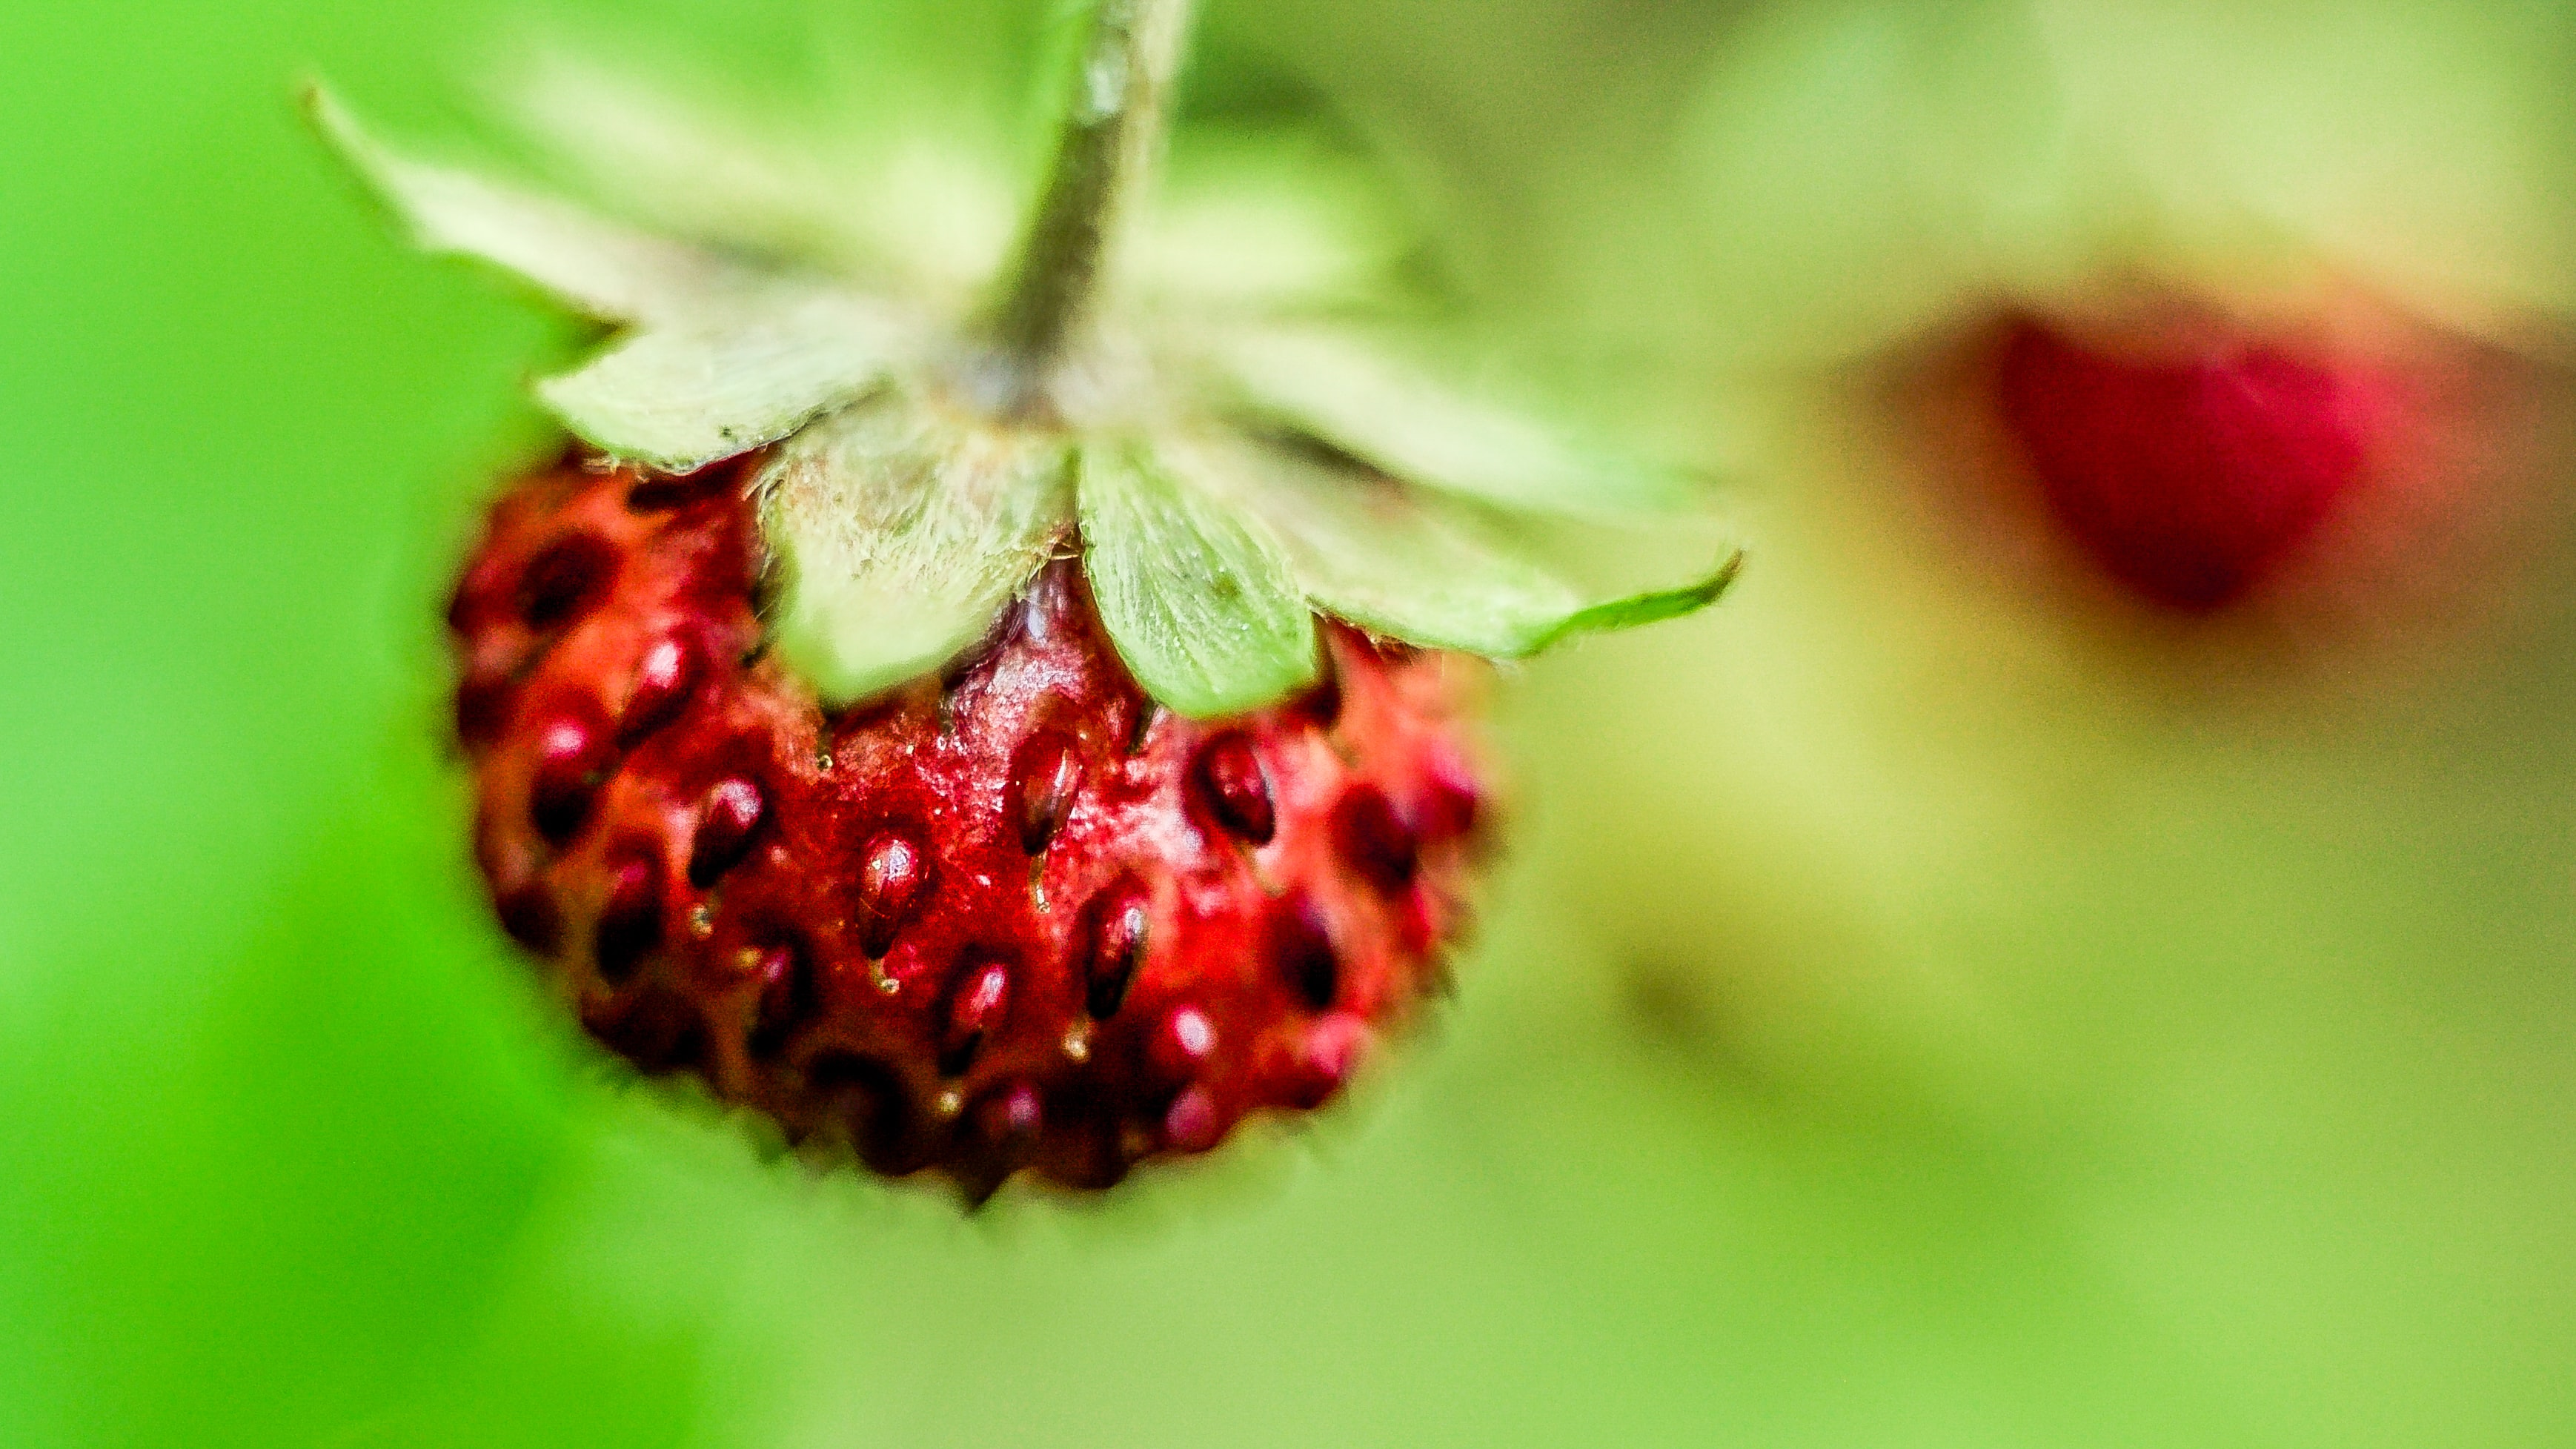 Macro of seeds on a red strawberry